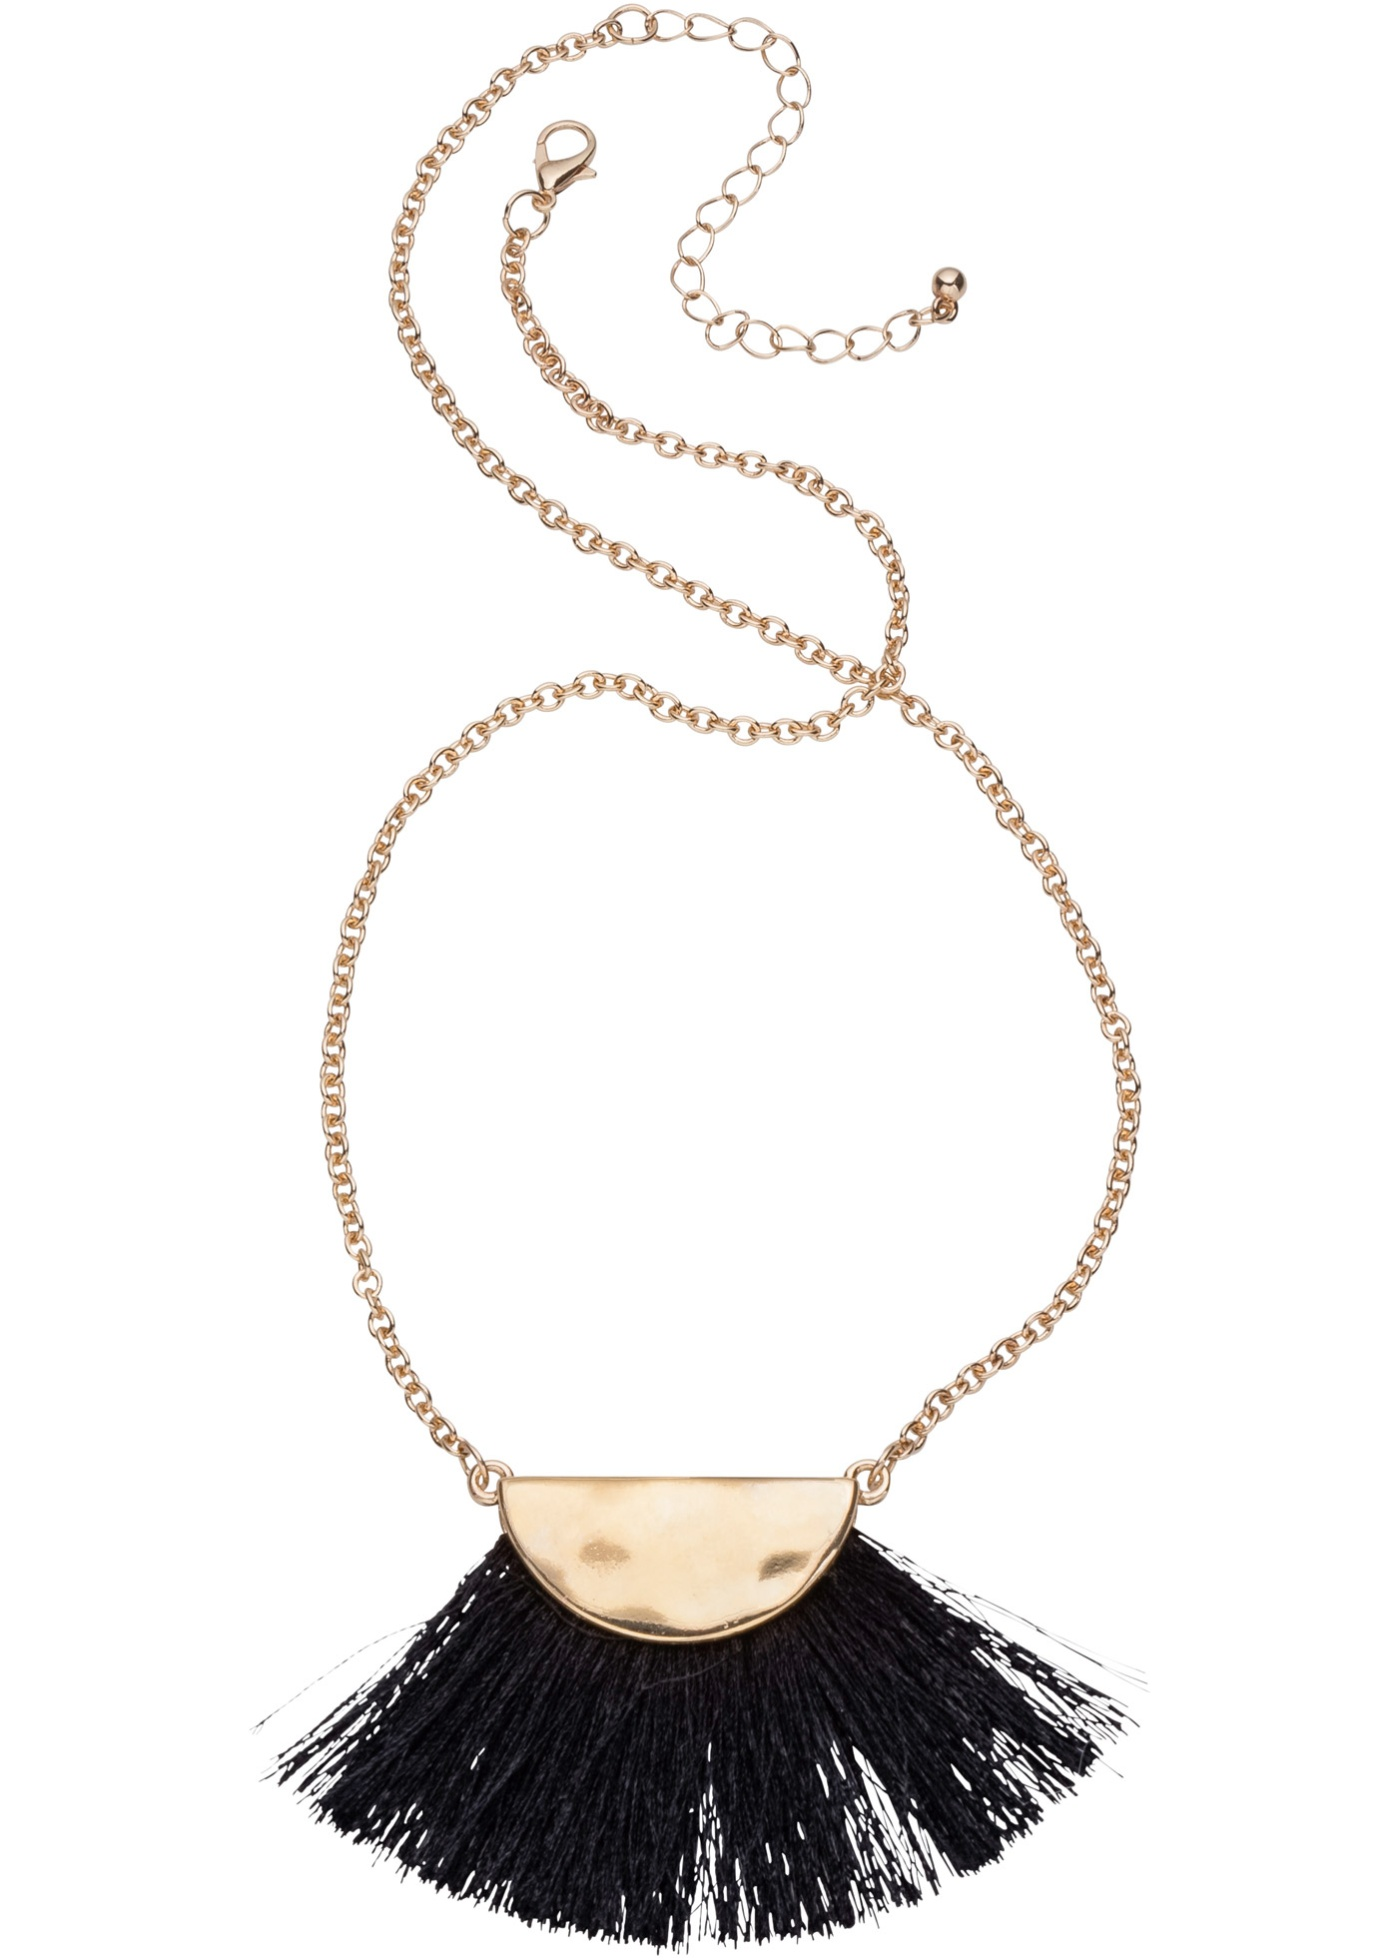 Collier avec pampille